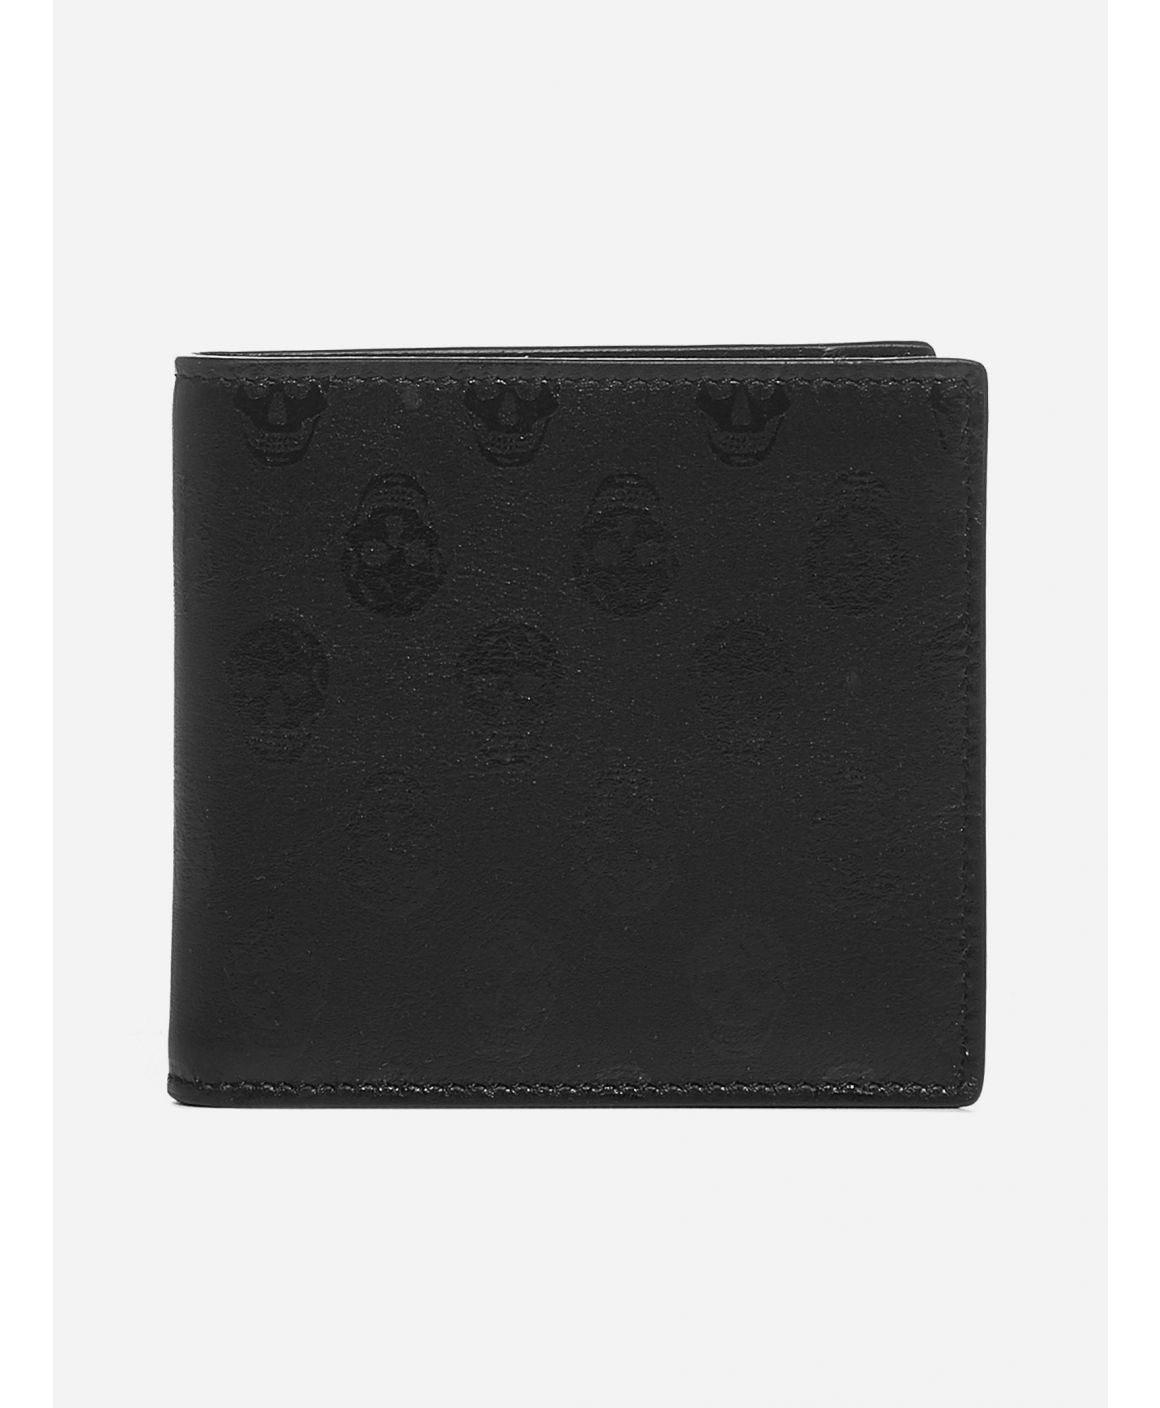 Skull print leather bifold wallet